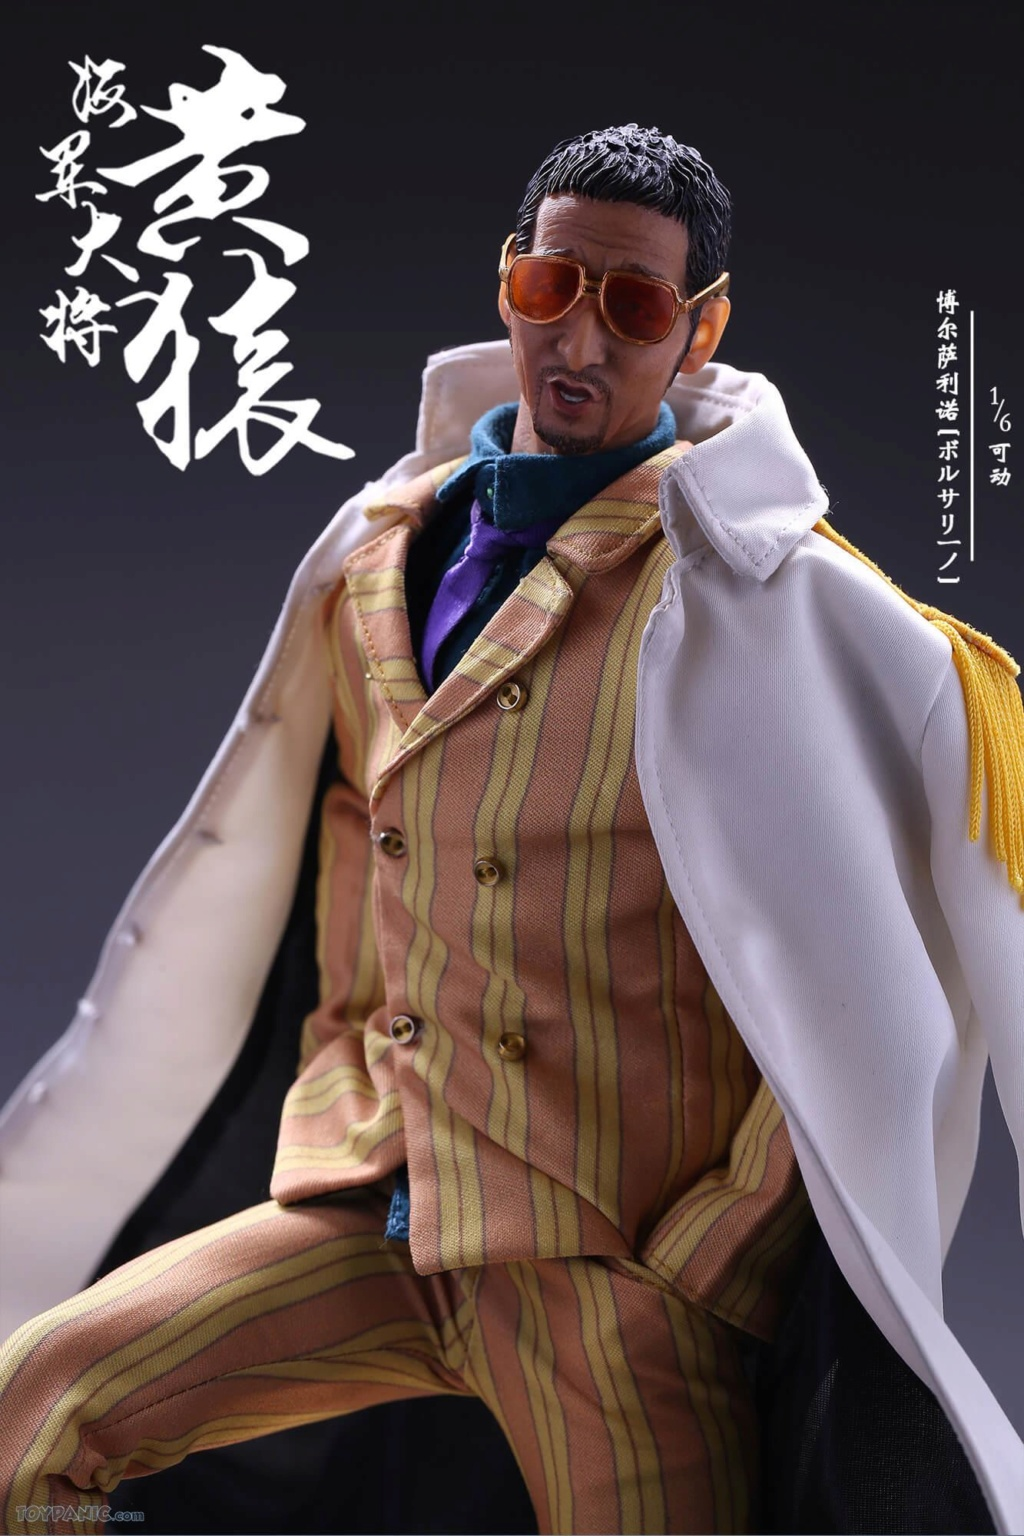 JokerToys - NEW PRODUCT: 1/6 Scale One Piece - Borsalino (Kizaru Yellow Monkey)  From JOKER TOYS  Code: JOK1810201801 10192038